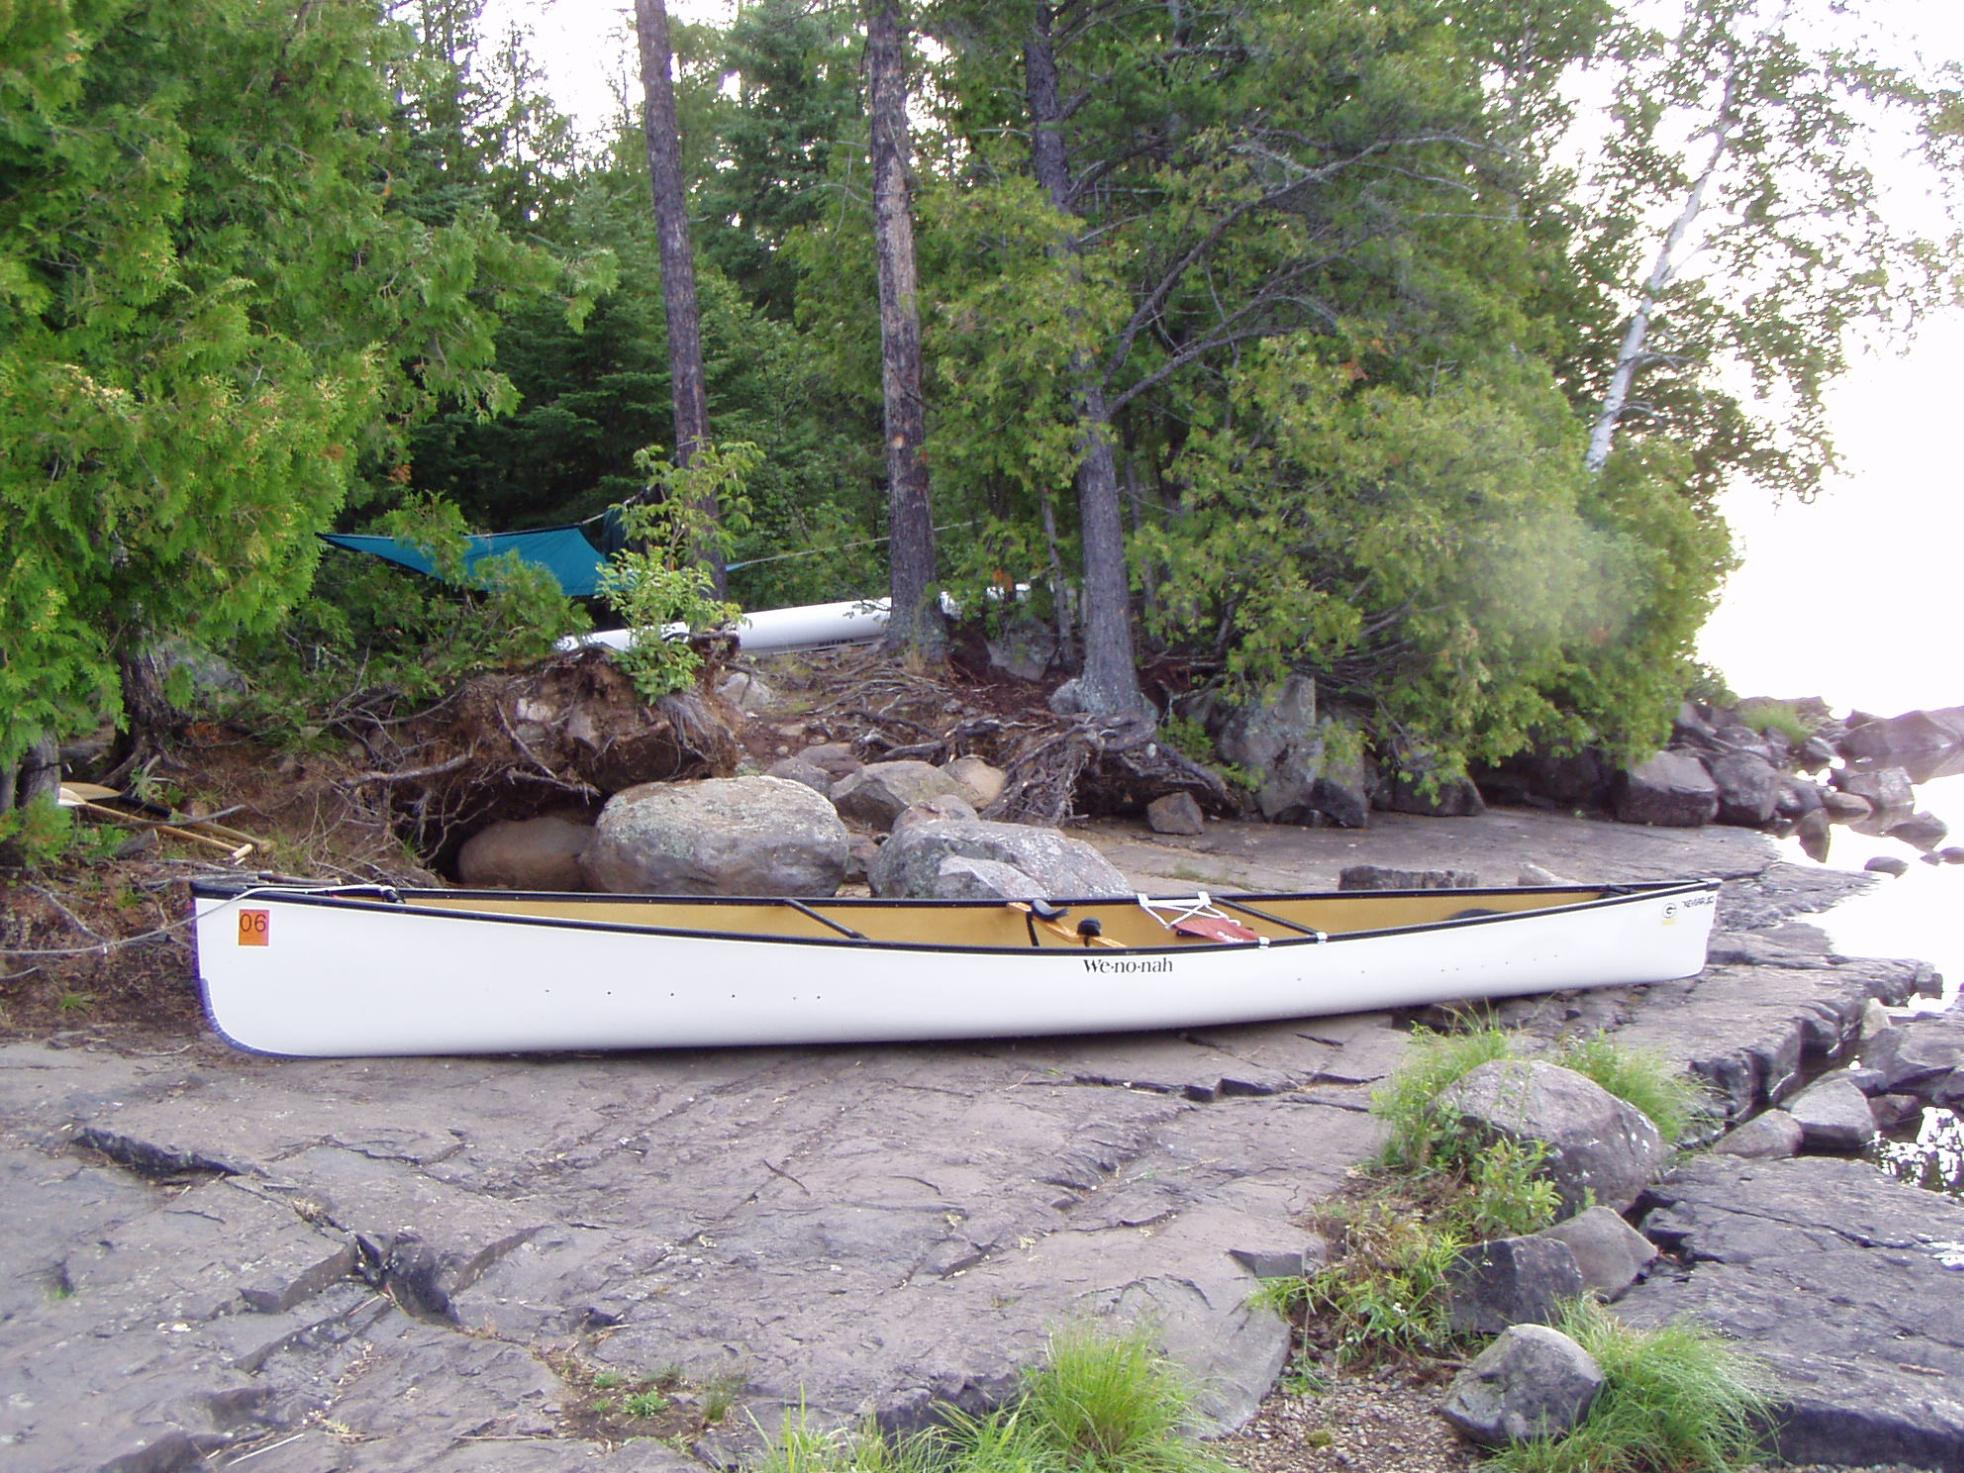 BWCA Wenonah vs Northstar (Bell) Boundary Waters Gear Forum